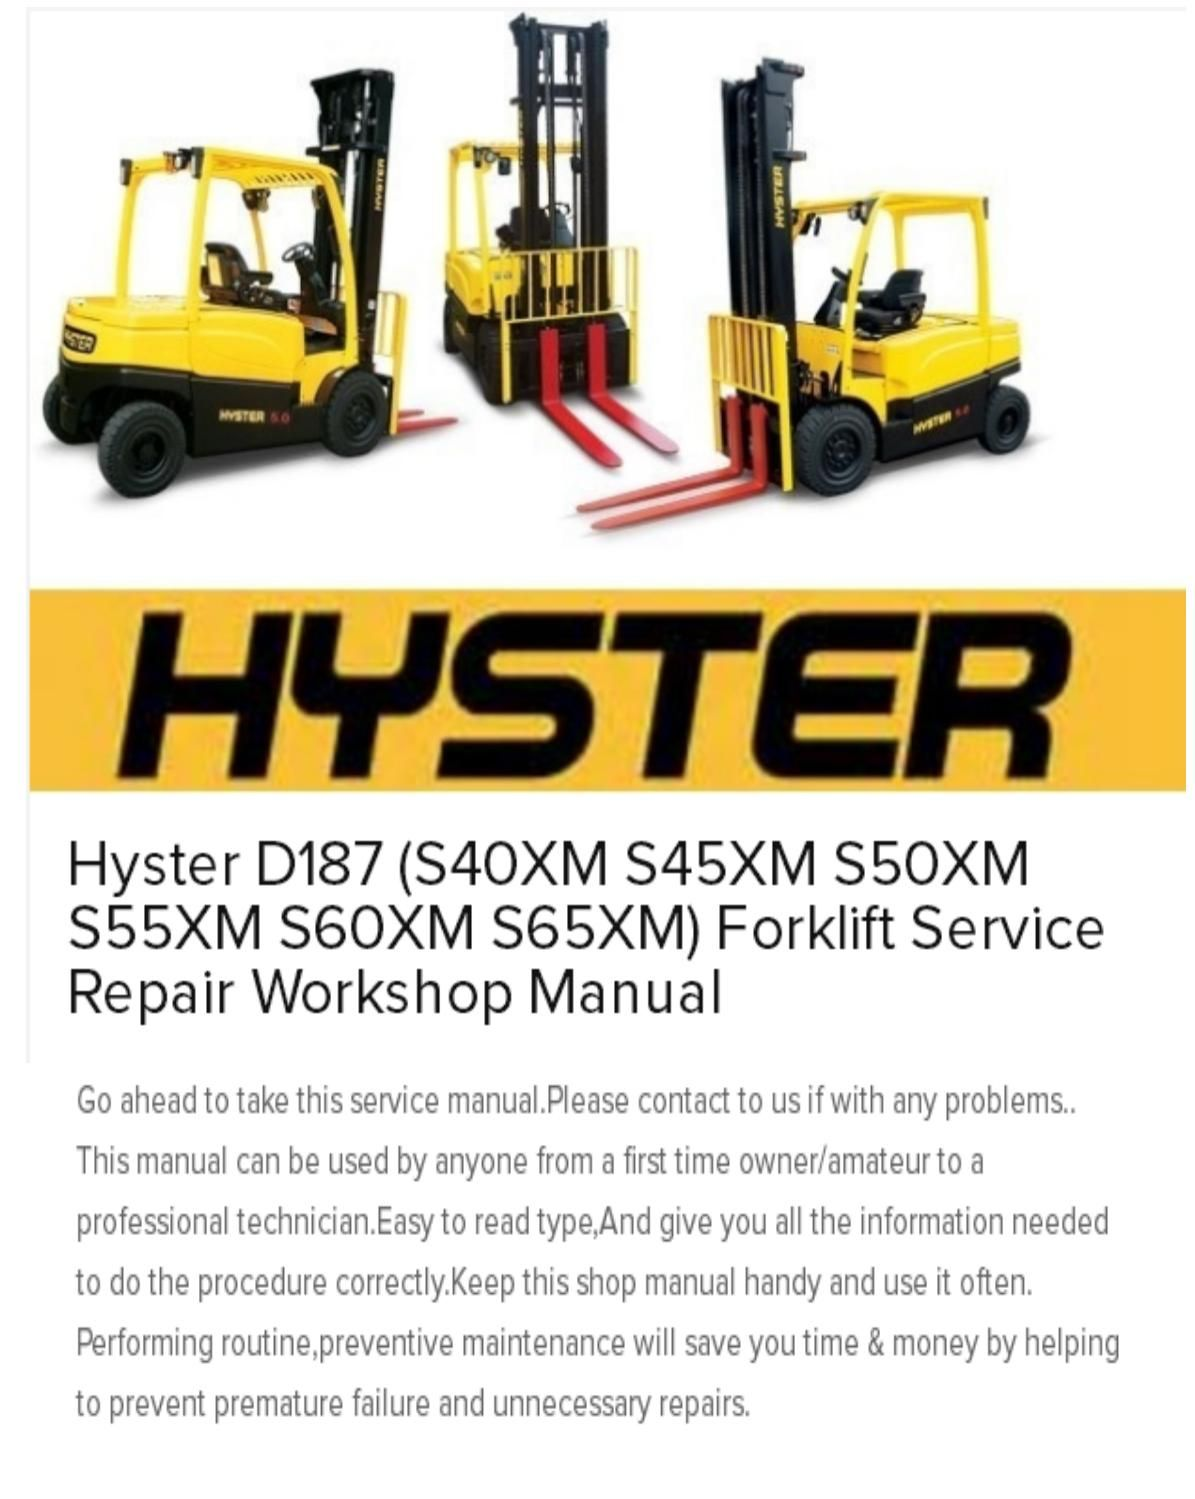 Wiring Diagram Hyster D187 Explained Diagrams Mcneilus Schematic S40xm S45xm S50xm S55xm S60xm S65xm Forklift Service